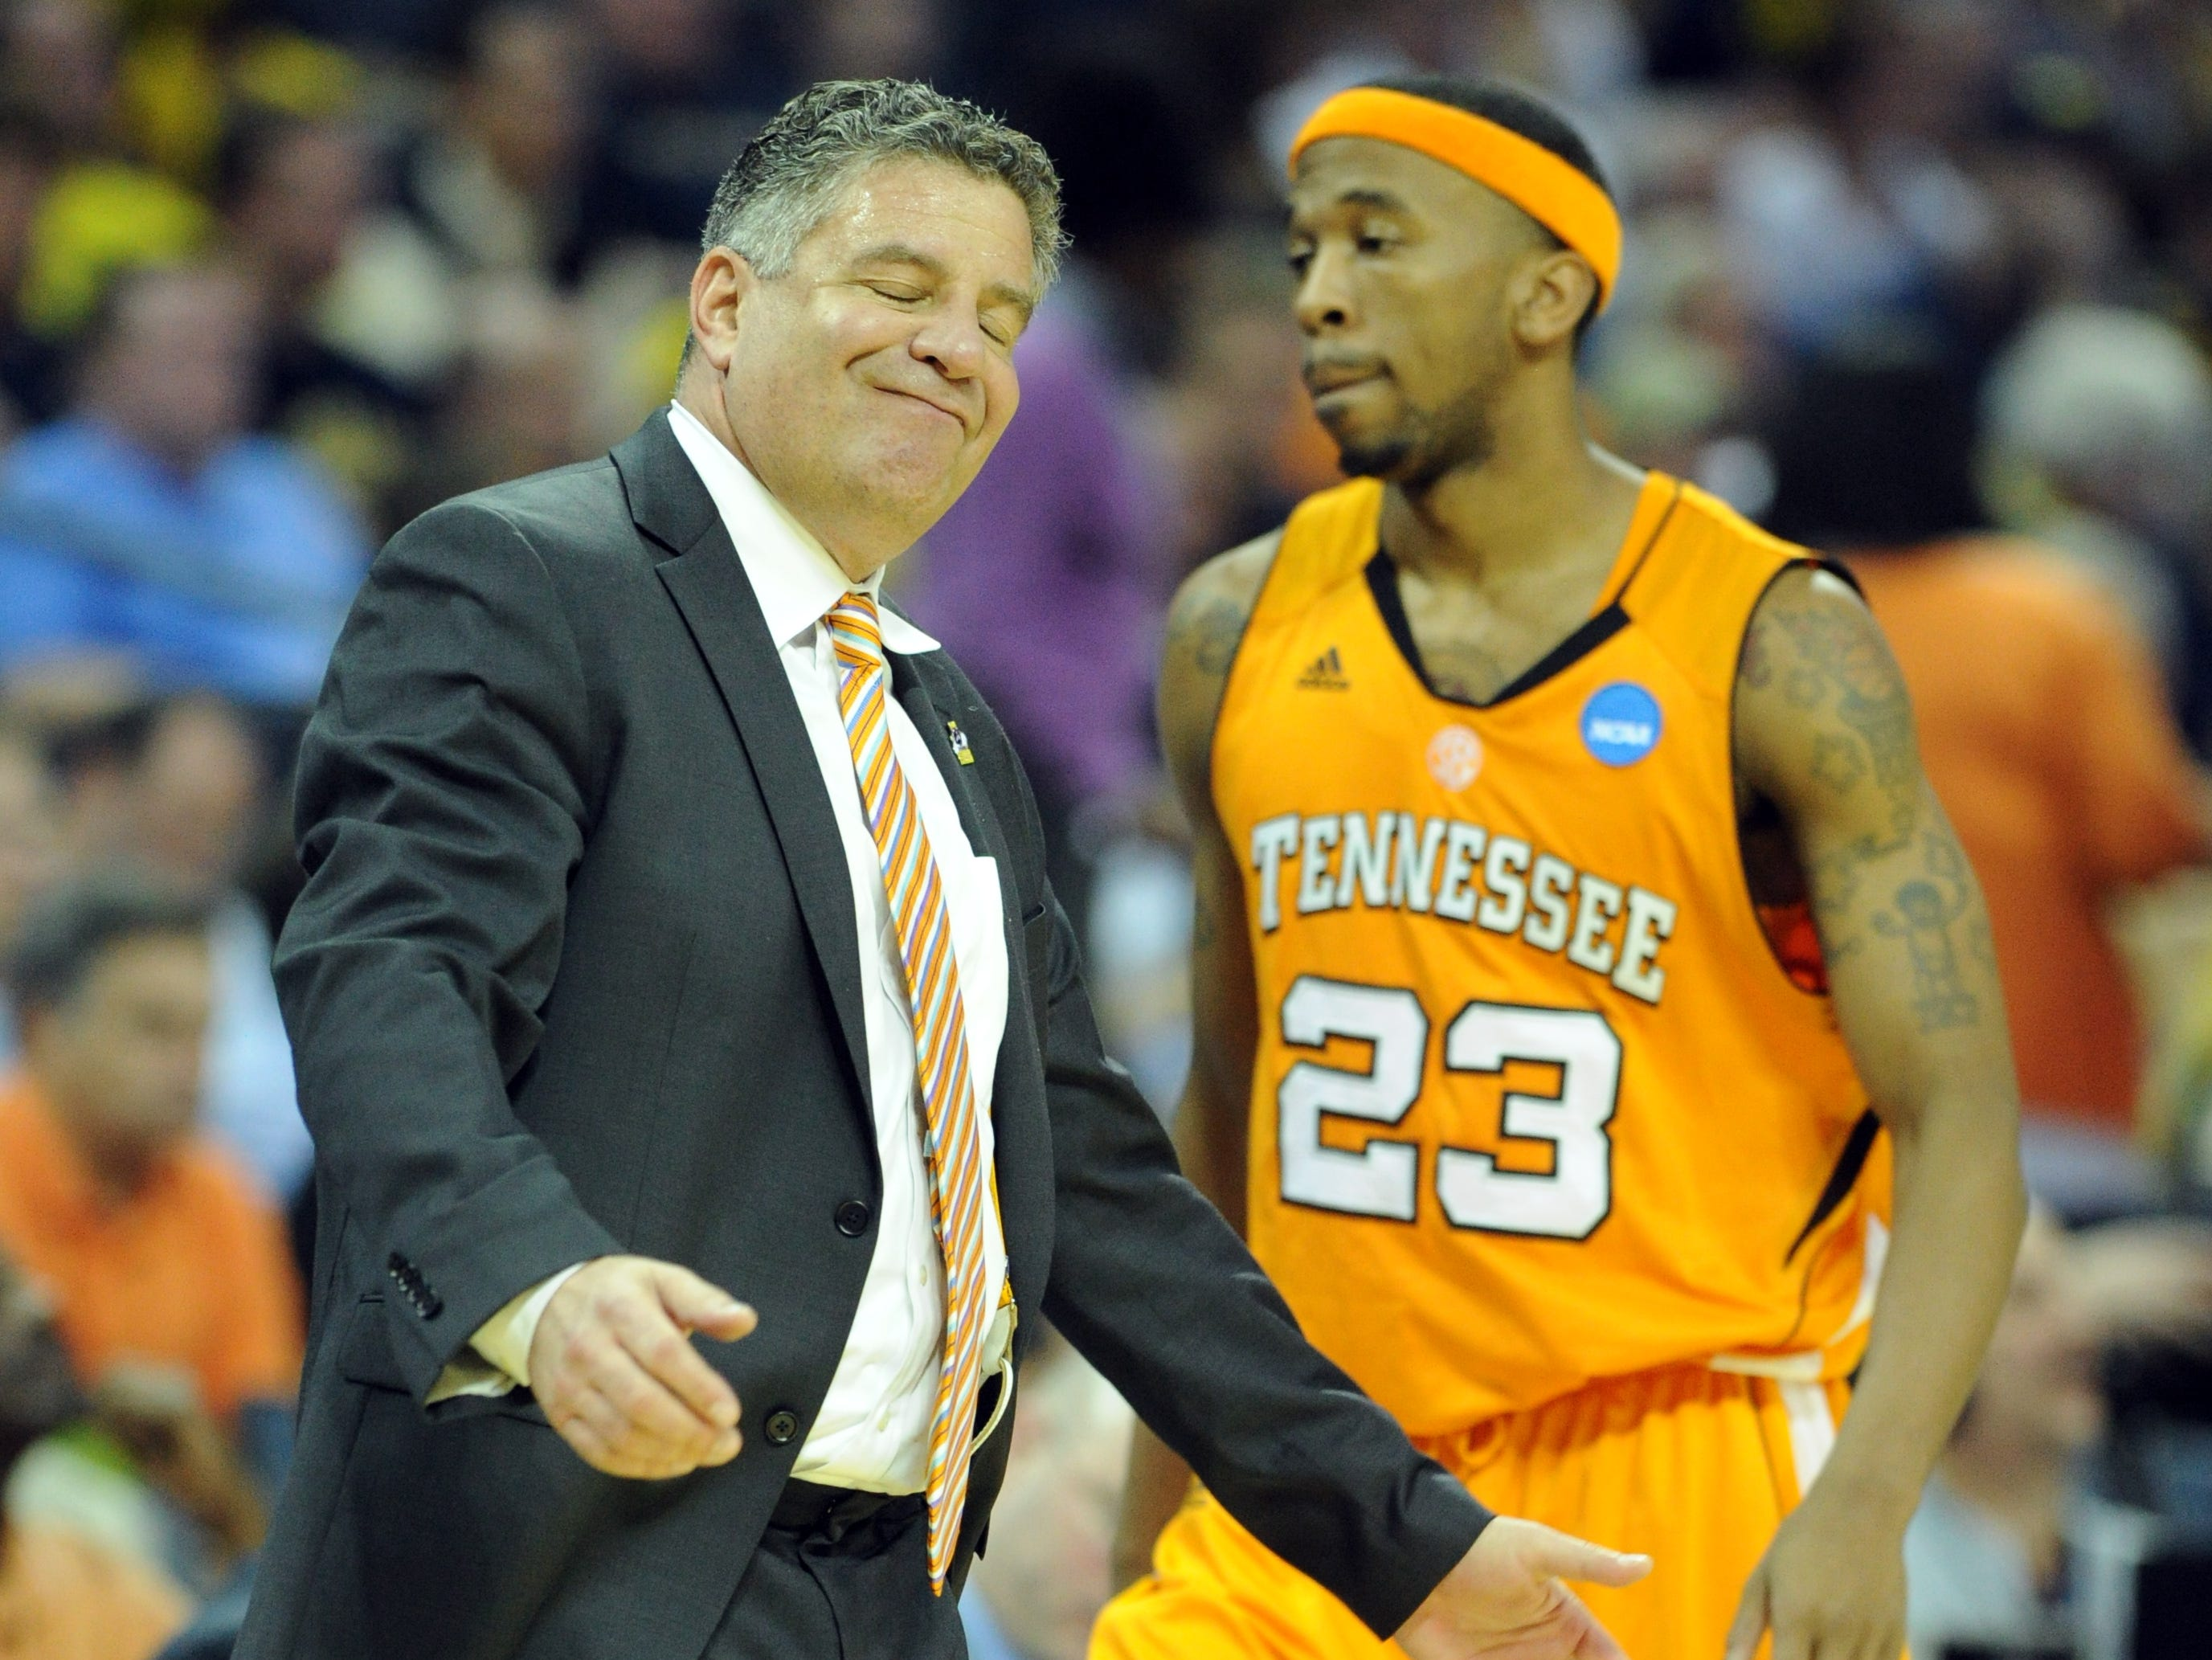 Tennessee head coach Bruce Pearl shakes his head as guard Cameron Tatum heads to the bench during the game against Michigan in the second round of the NCAA Tournament at Time Warner Cable Arena in Charlotte, N.C. Friday, March 18, 2011.  The Vols lost 75-45 to the Wolverines.